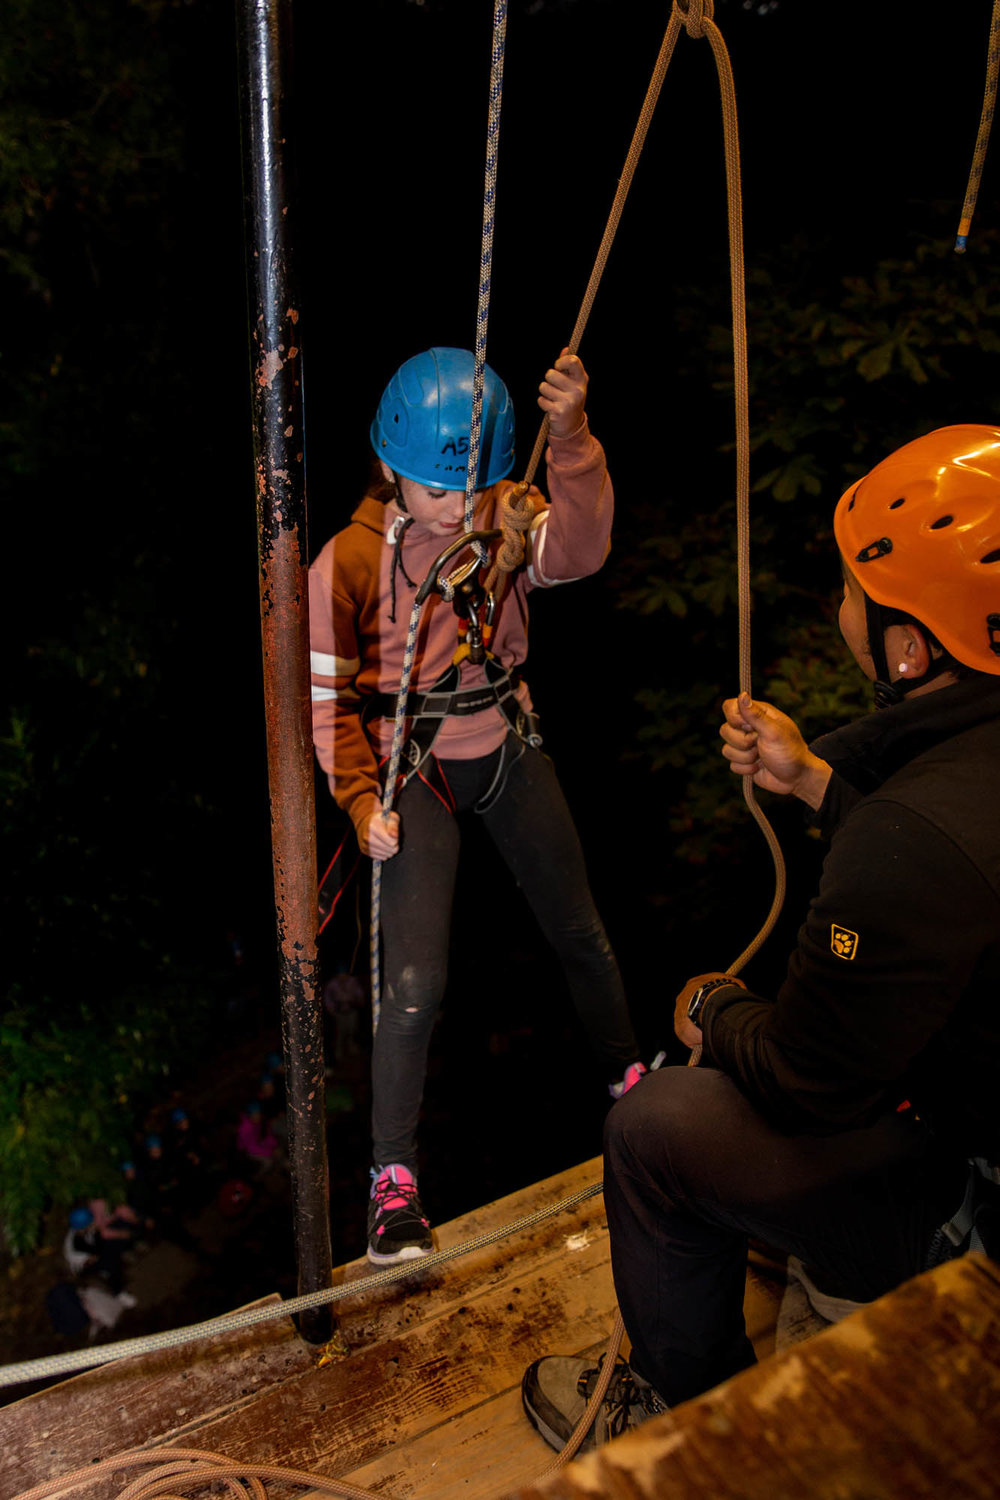 Culmington_Manor_0002.jpg